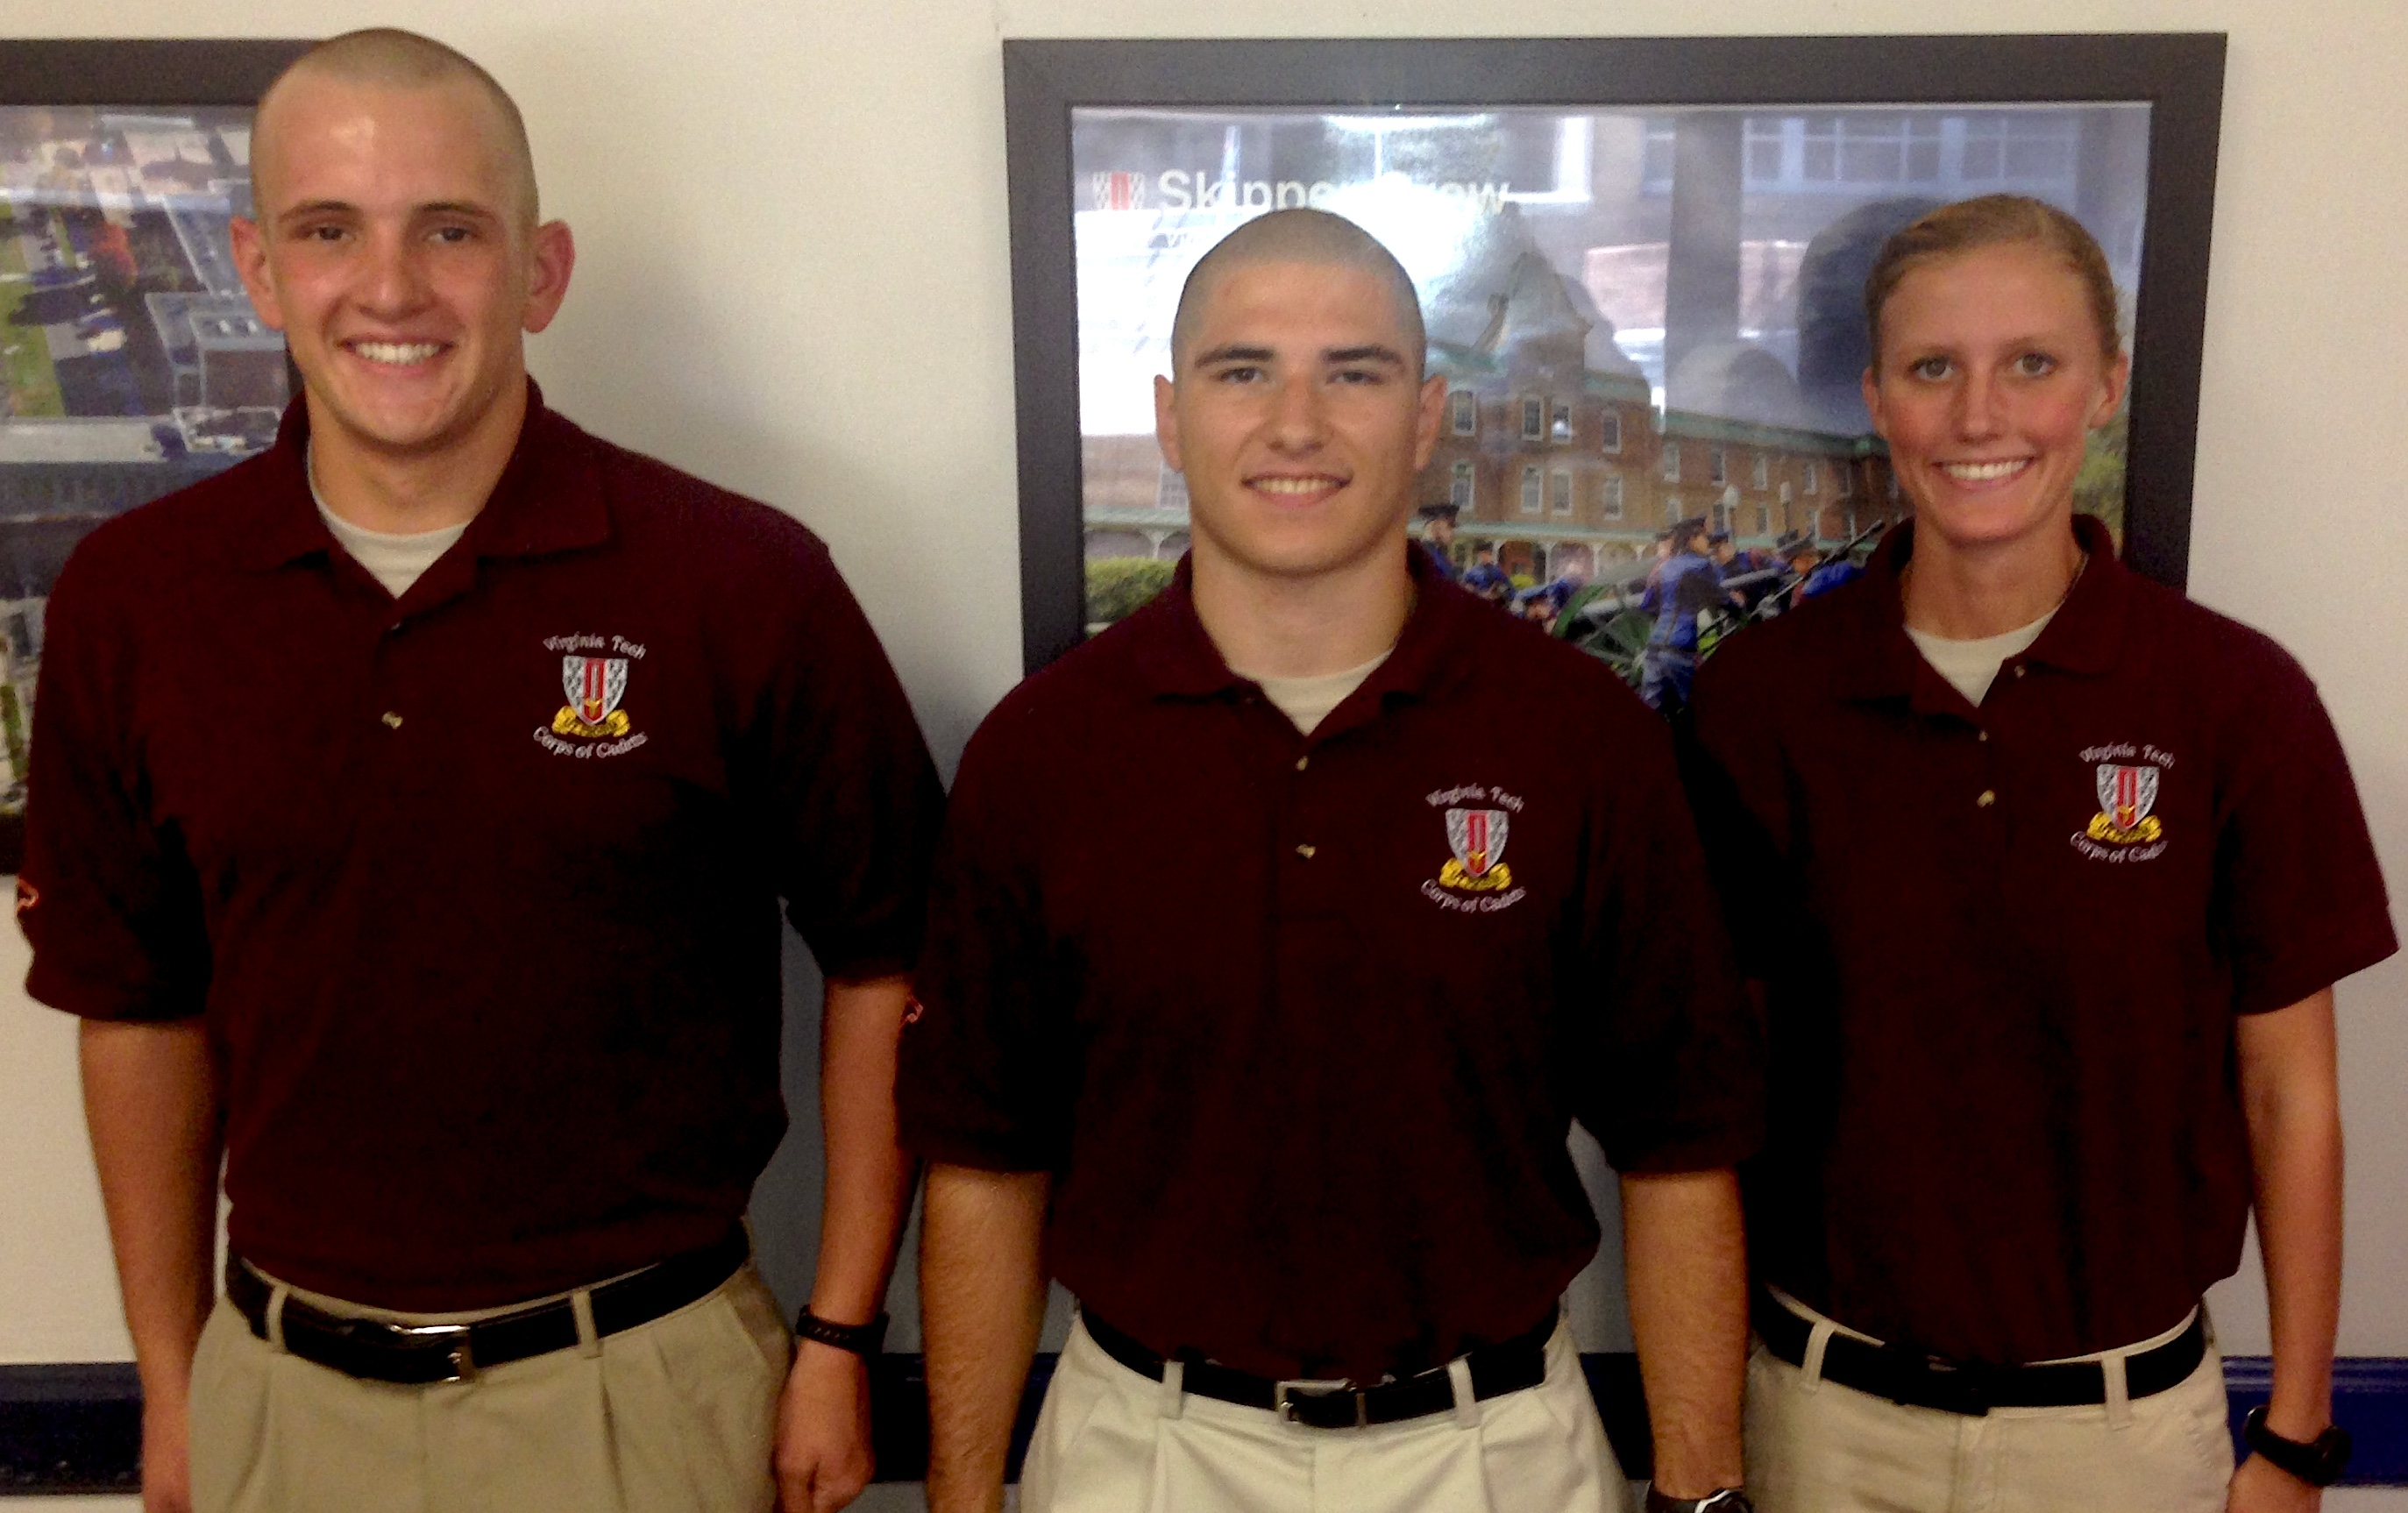 From left to right are Cadets Benjamin Scholz, Brandon Robertello, and Megan Crouch.